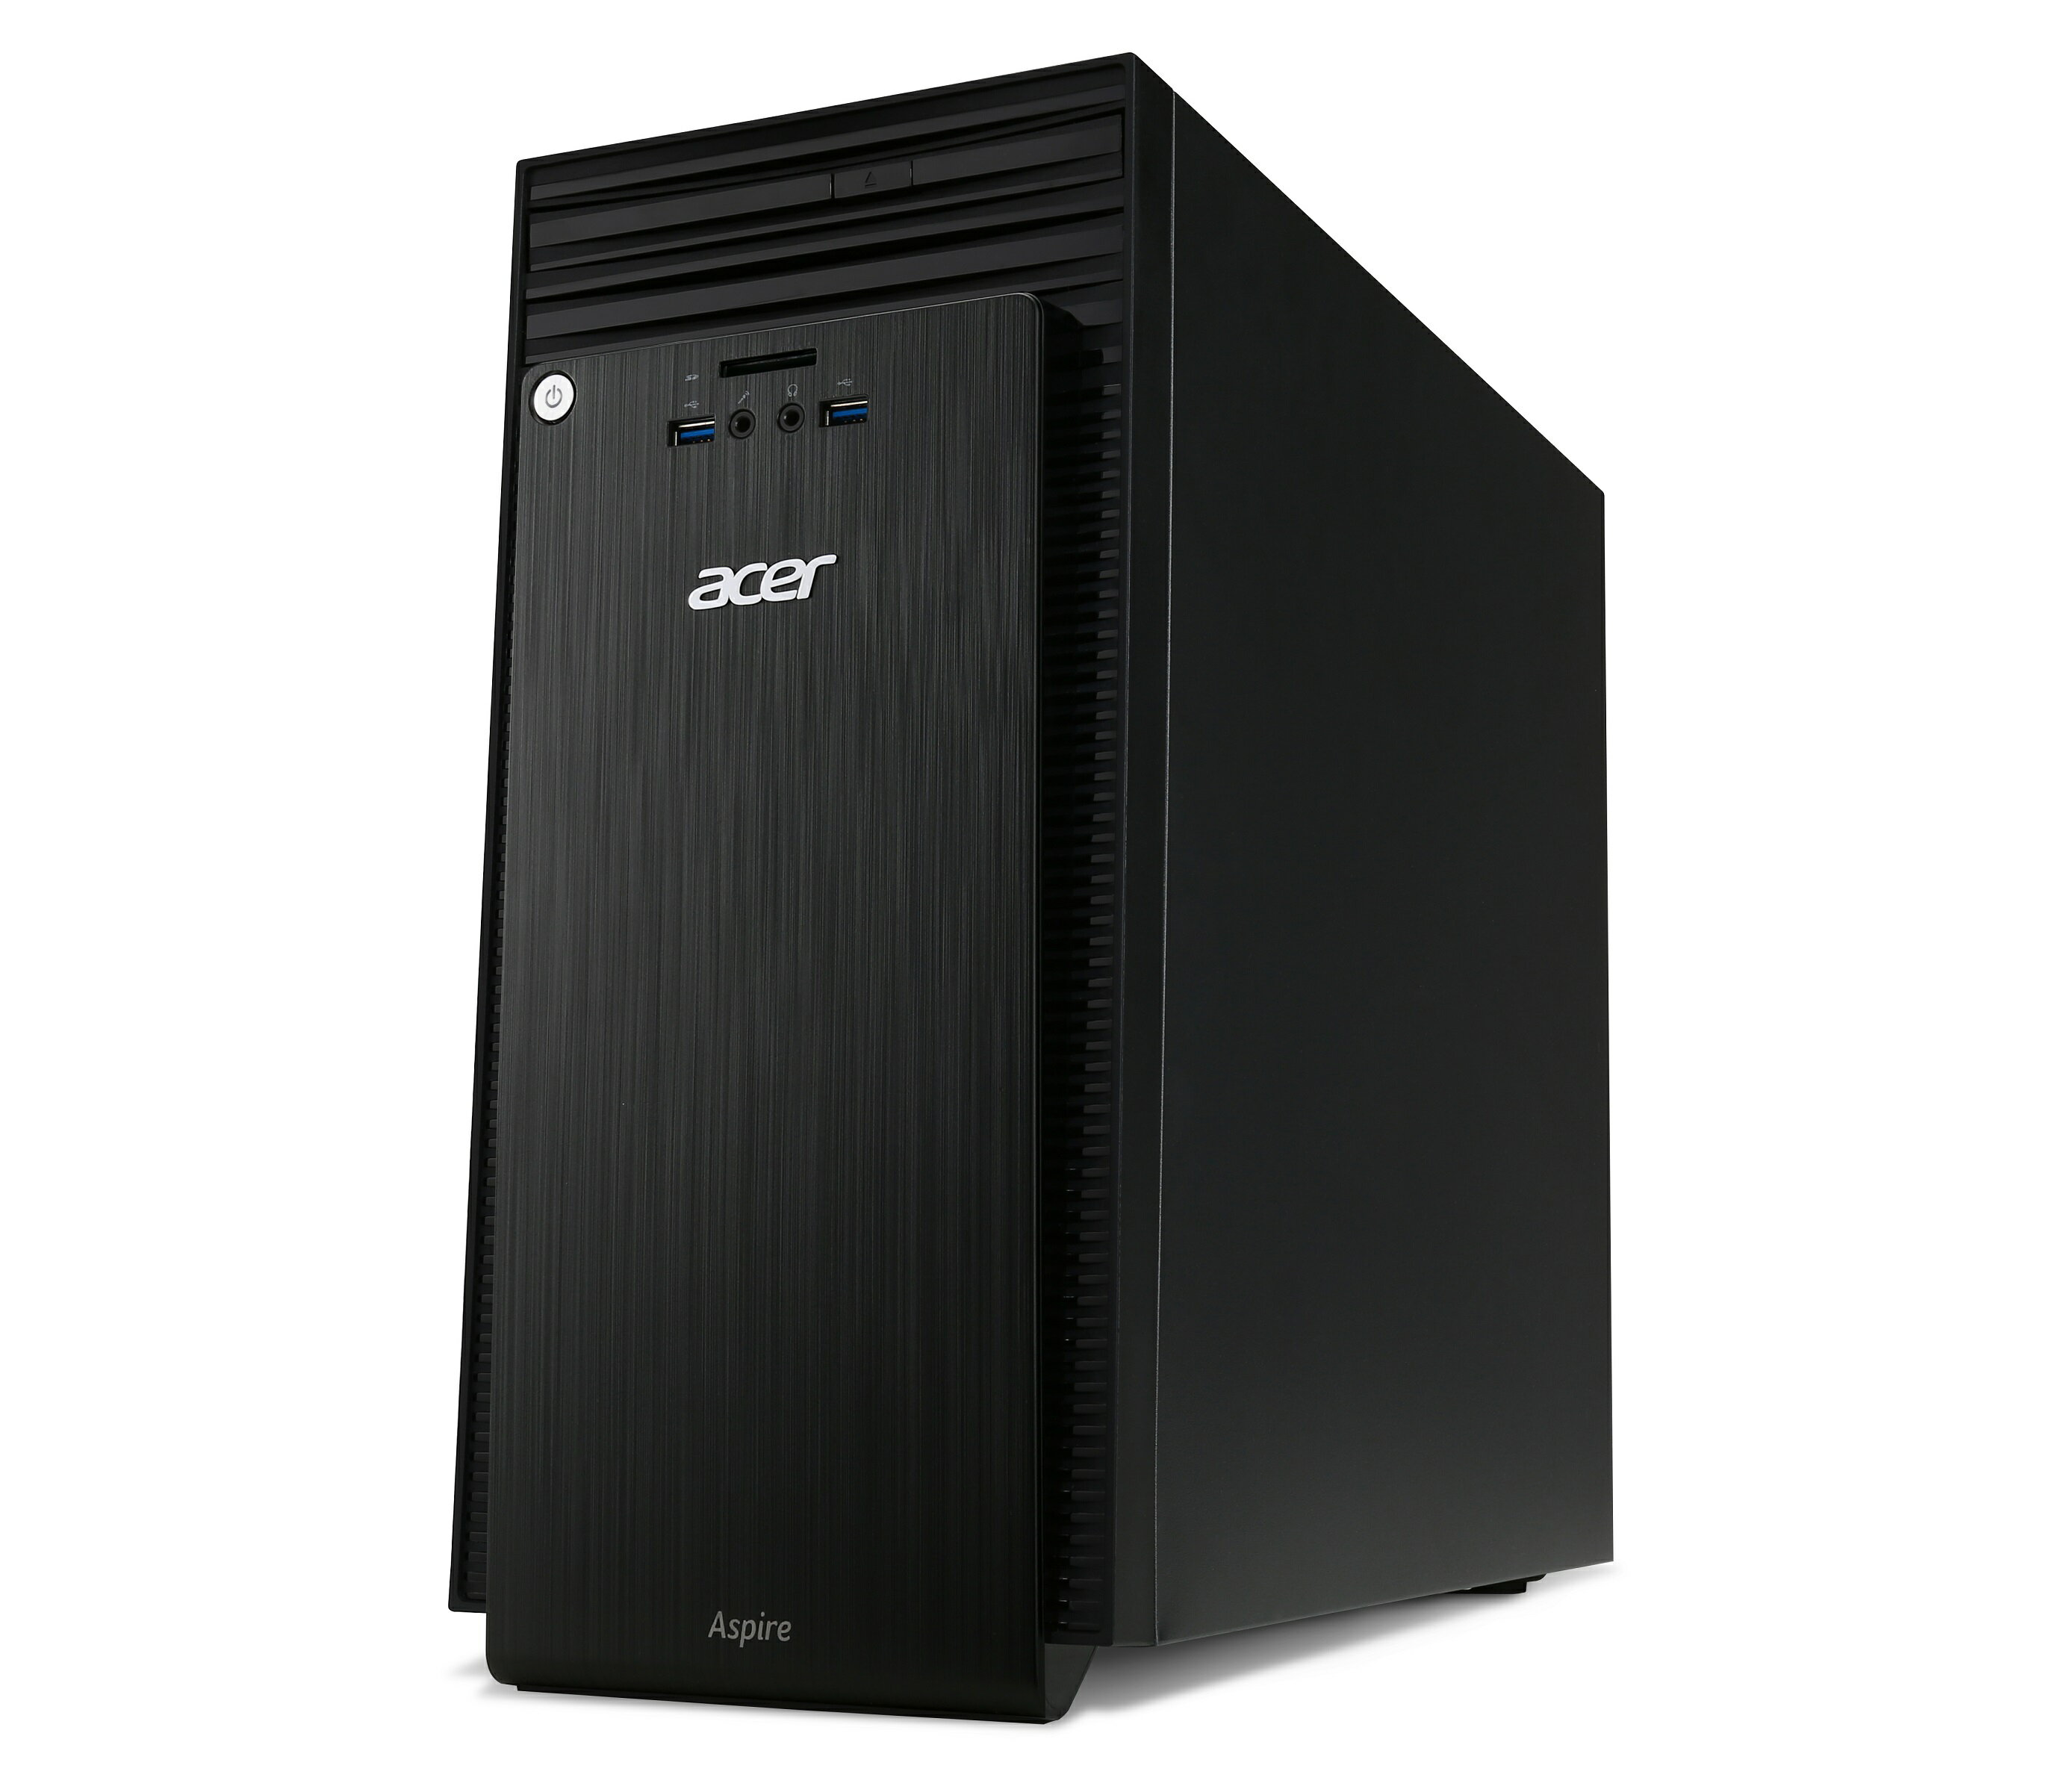 ACER ATC-705-011 個人電腦 i5-4460;8GB*1;D1000GB 7.2KS3_4K灌W10;SM DL;CR/ GT720 2GB;W10HML+Office 365-1Y